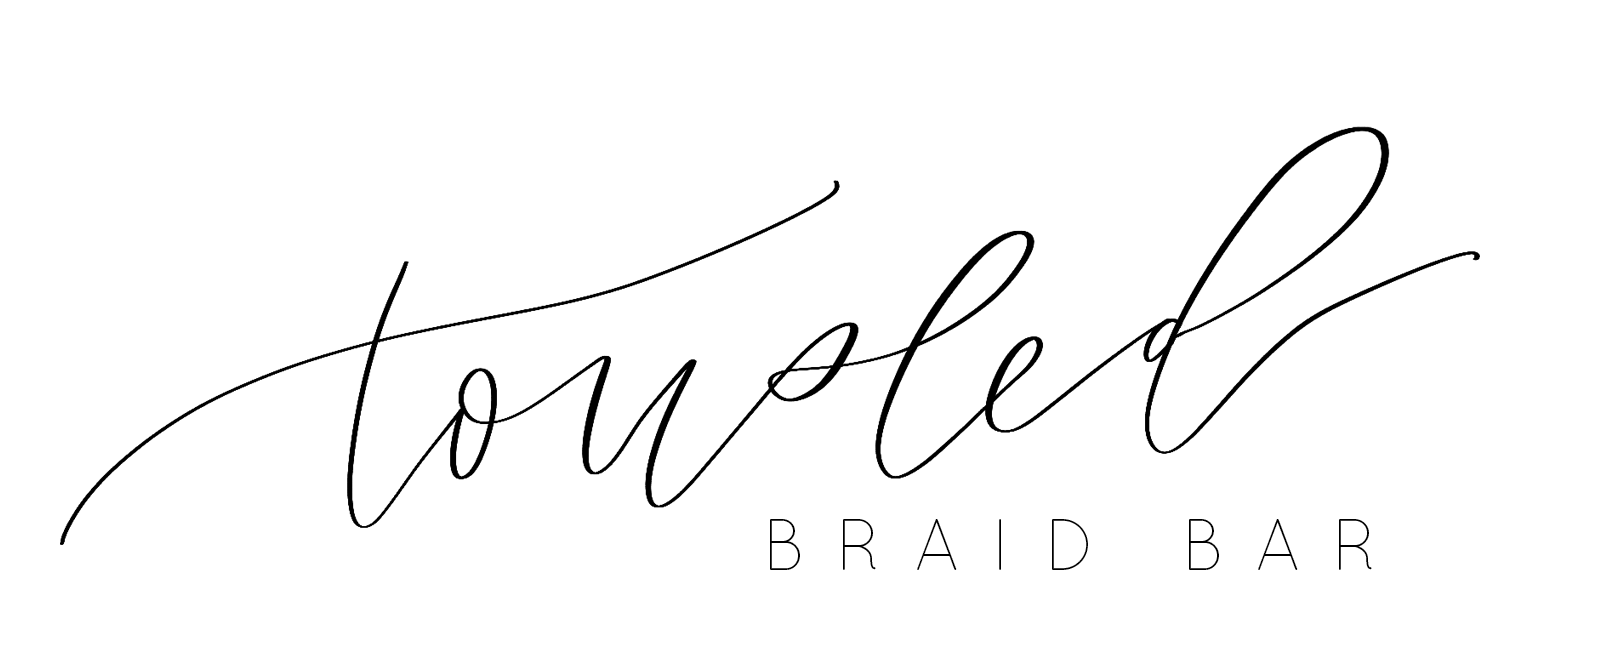 Braid bar logo.png